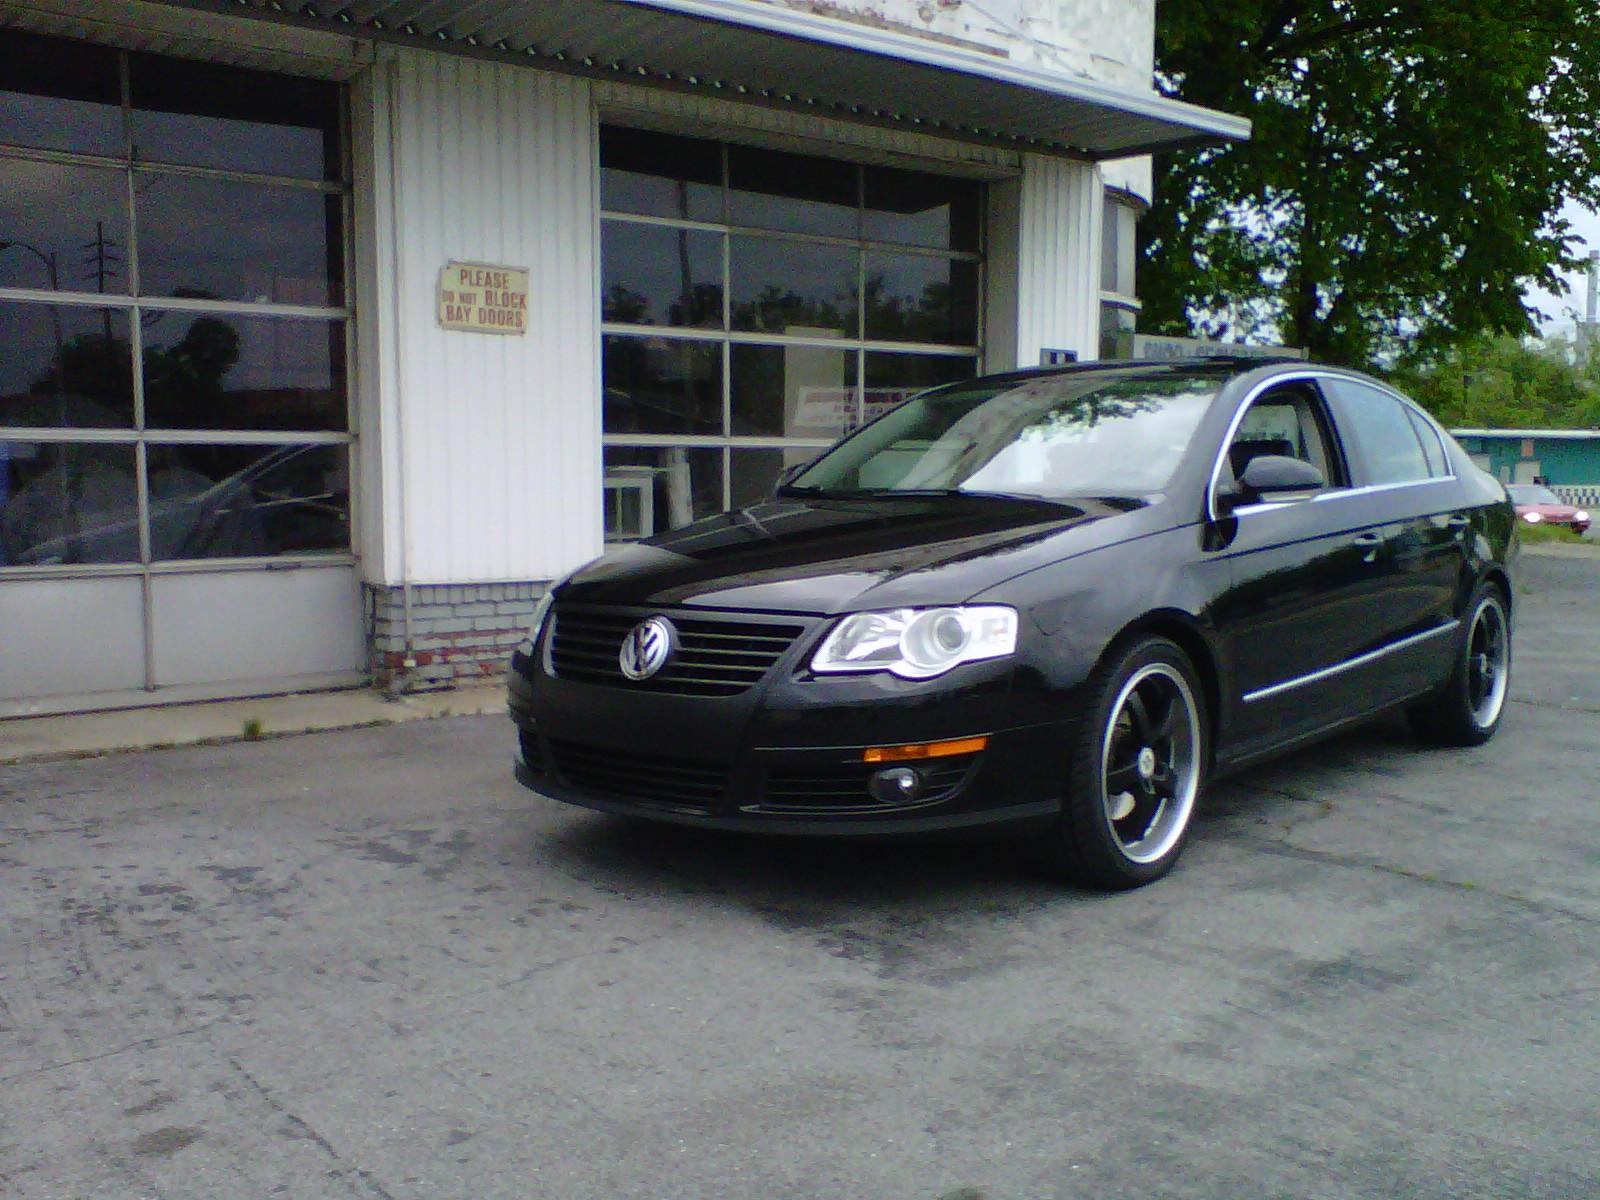 jbyrd man 2006 volkswagen passat3 6 sedan 4d specs photos. Black Bedroom Furniture Sets. Home Design Ideas